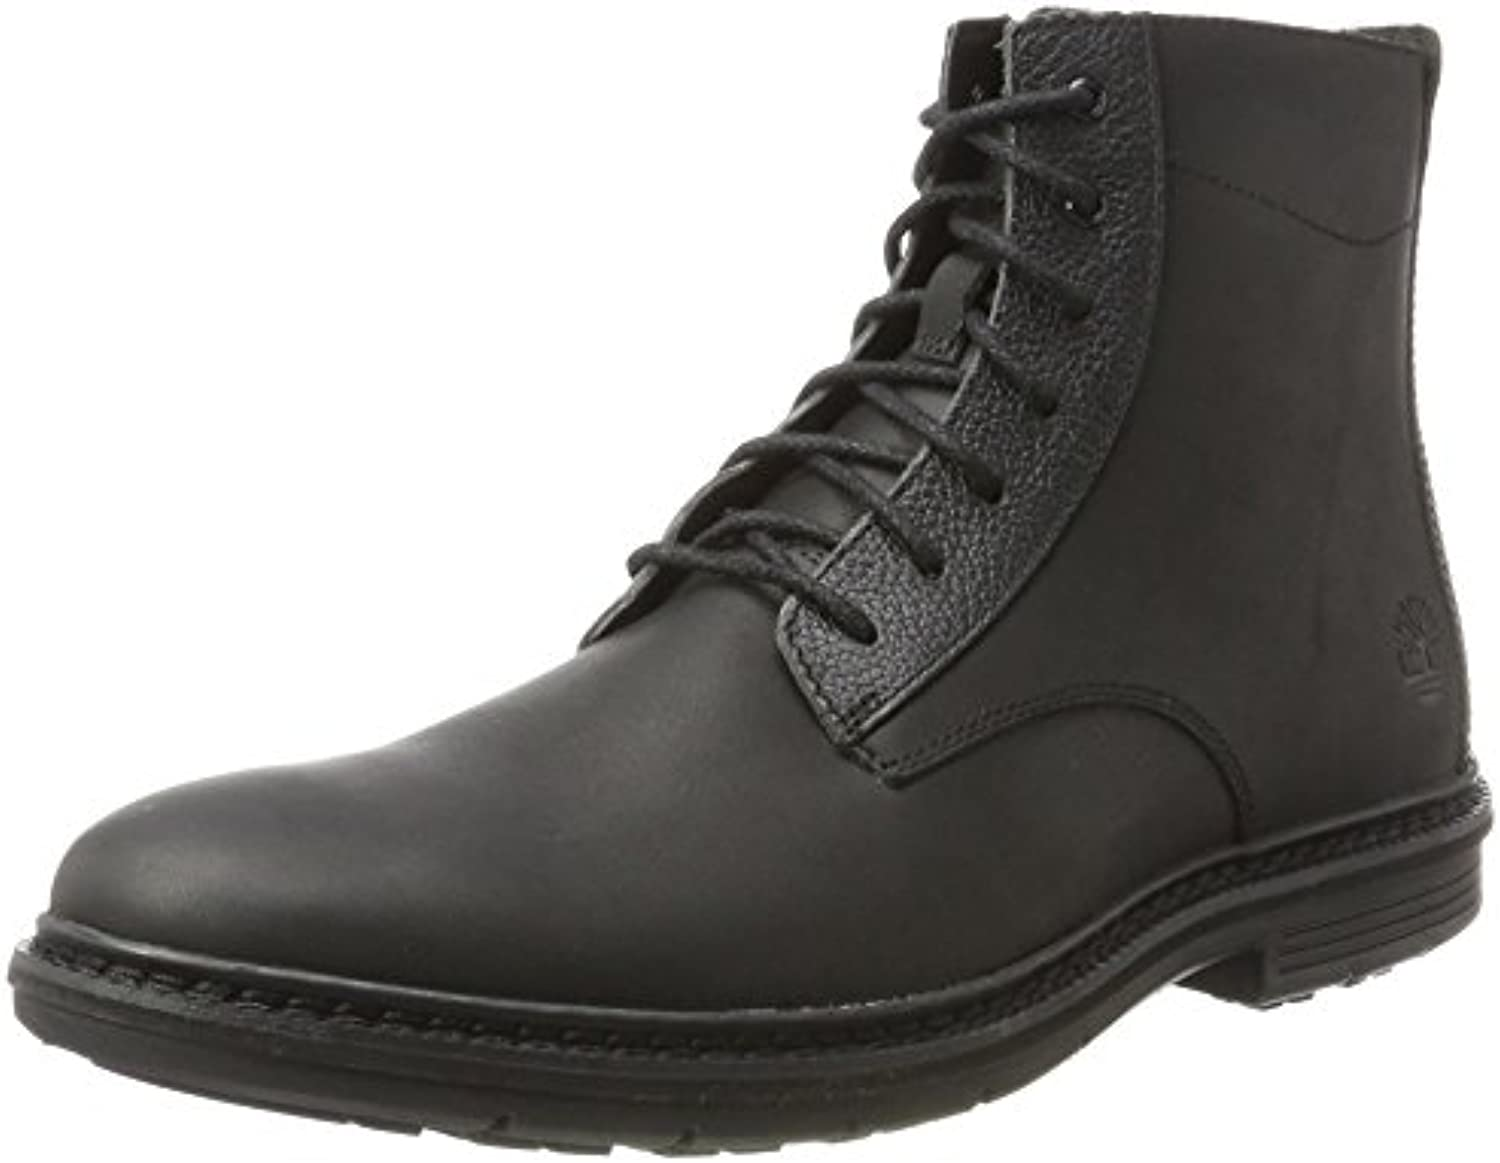 Trail Ab671f Bottes Timberland Homme Naples nXSq7pFxw